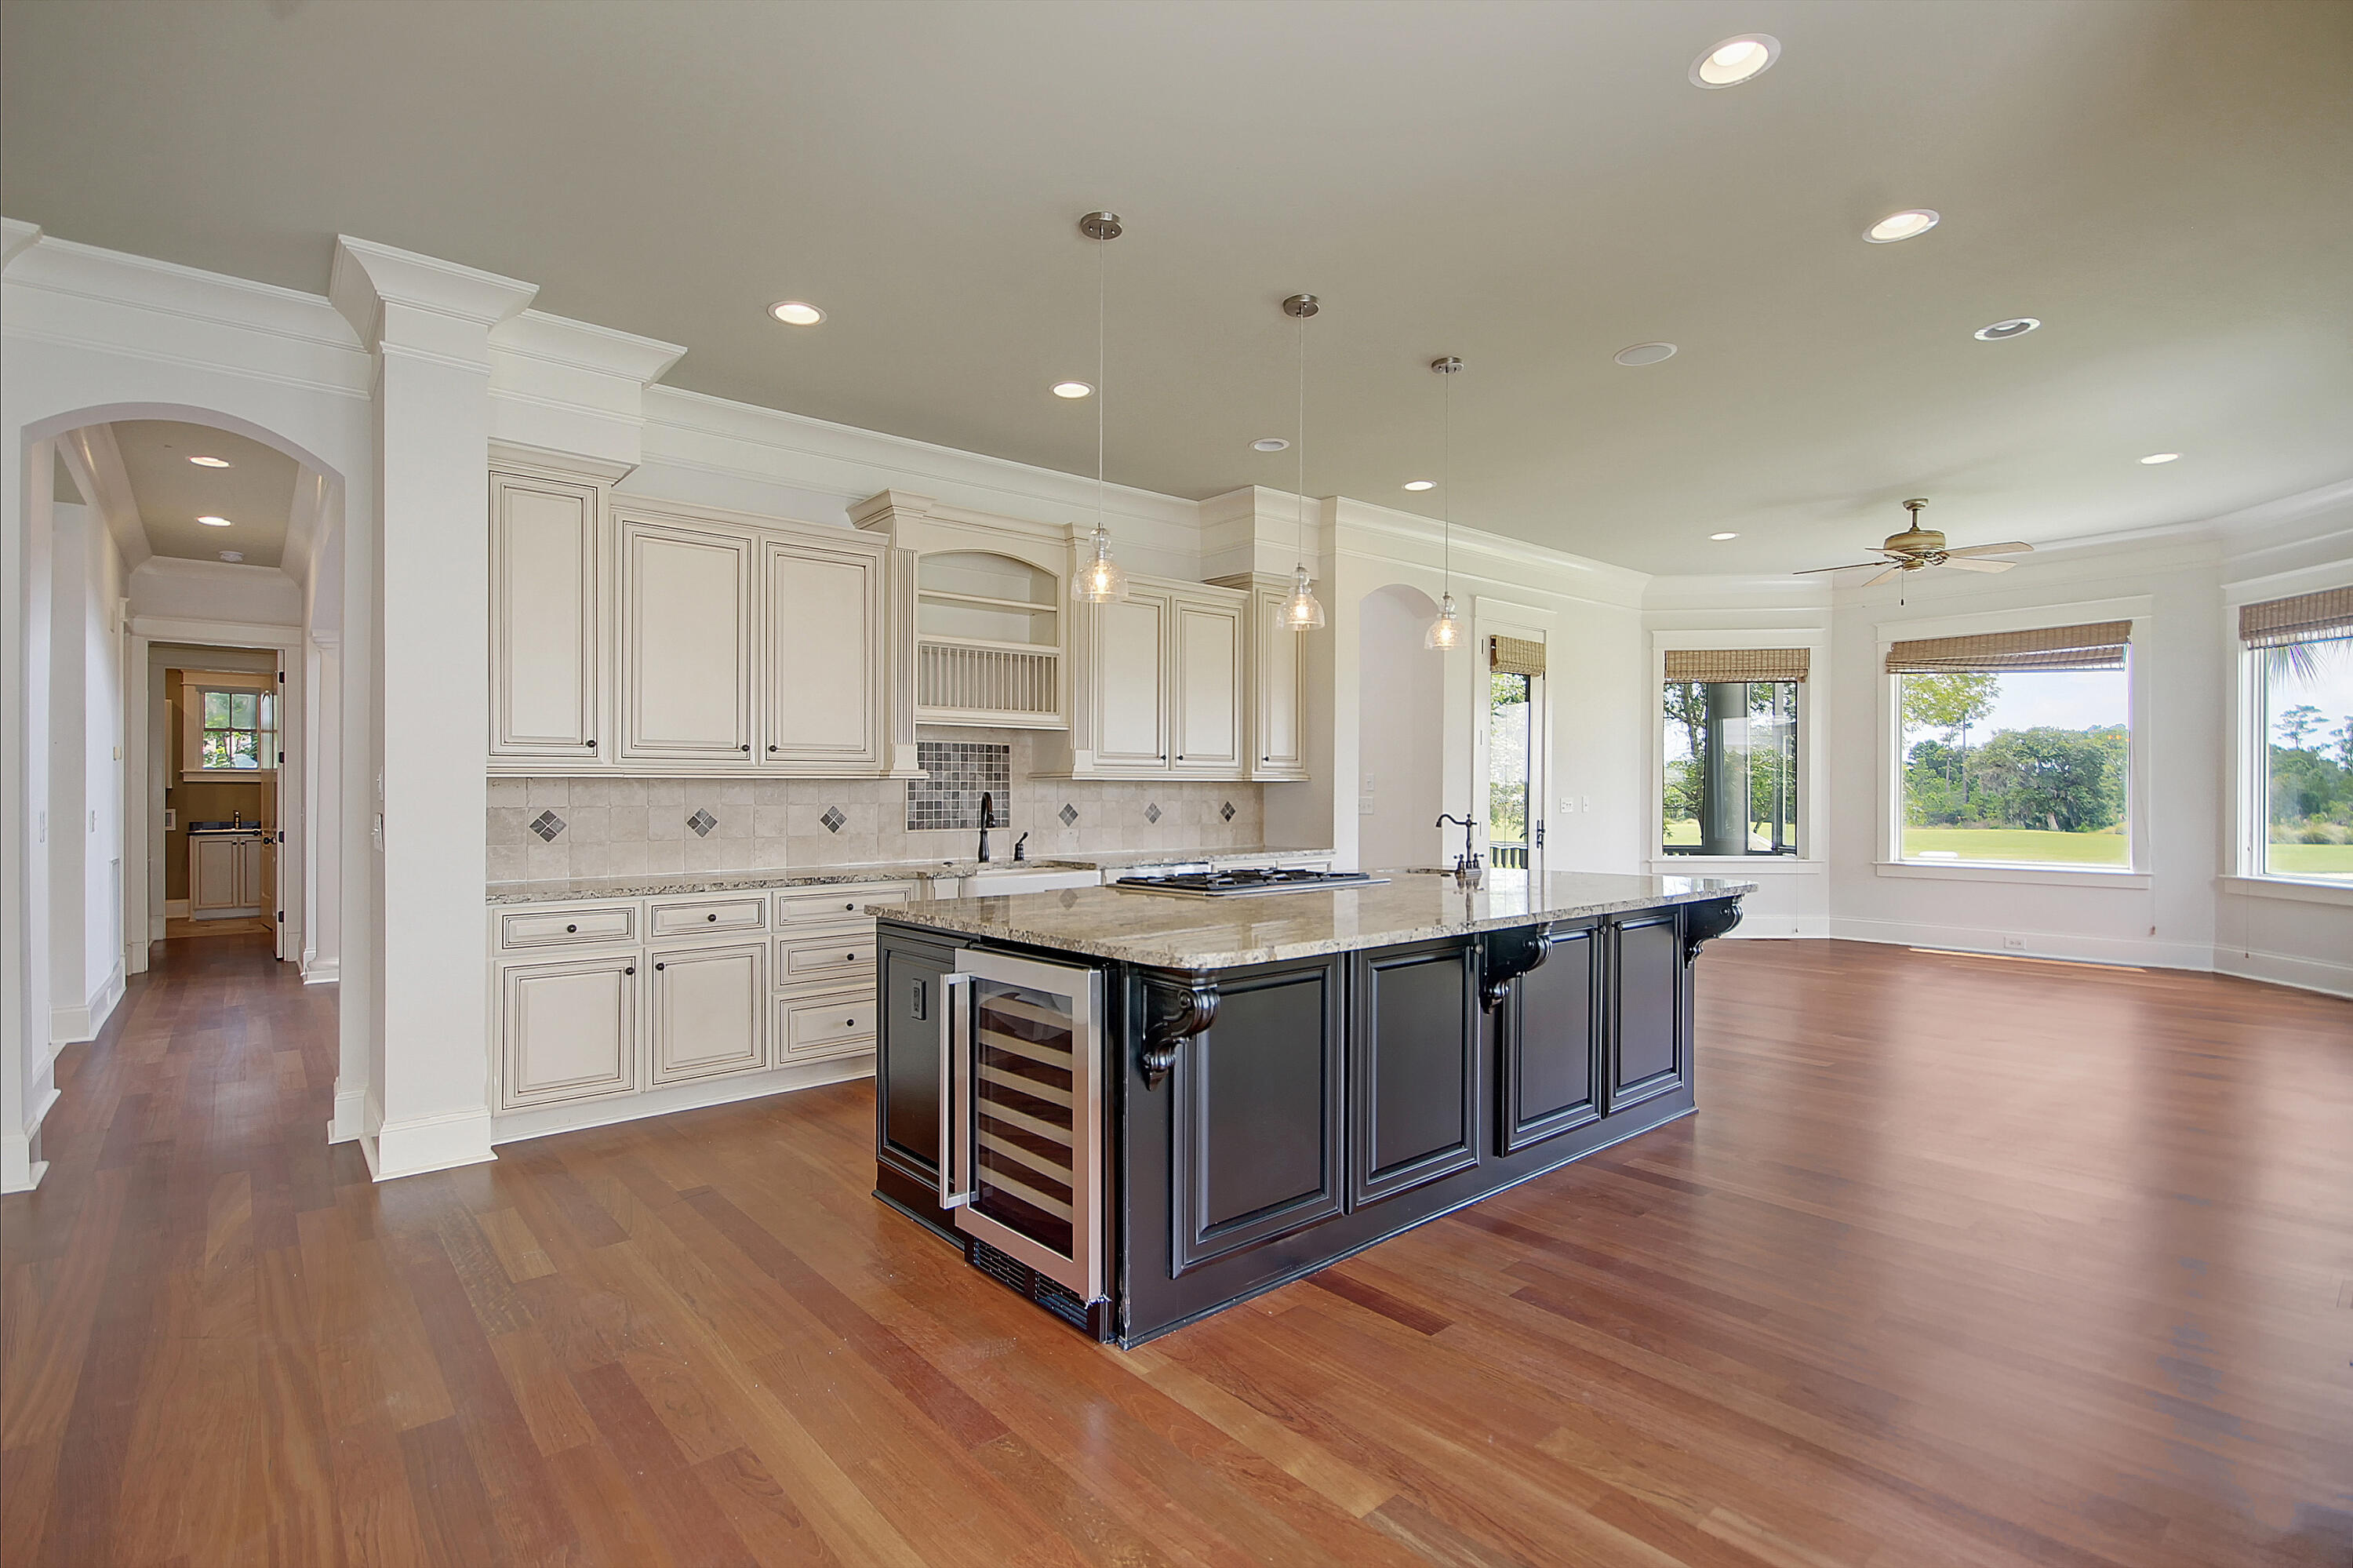 Rivertowne Country Club Homes For Sale - 1632 Rivertowne Country Club, Mount Pleasant, SC - 64